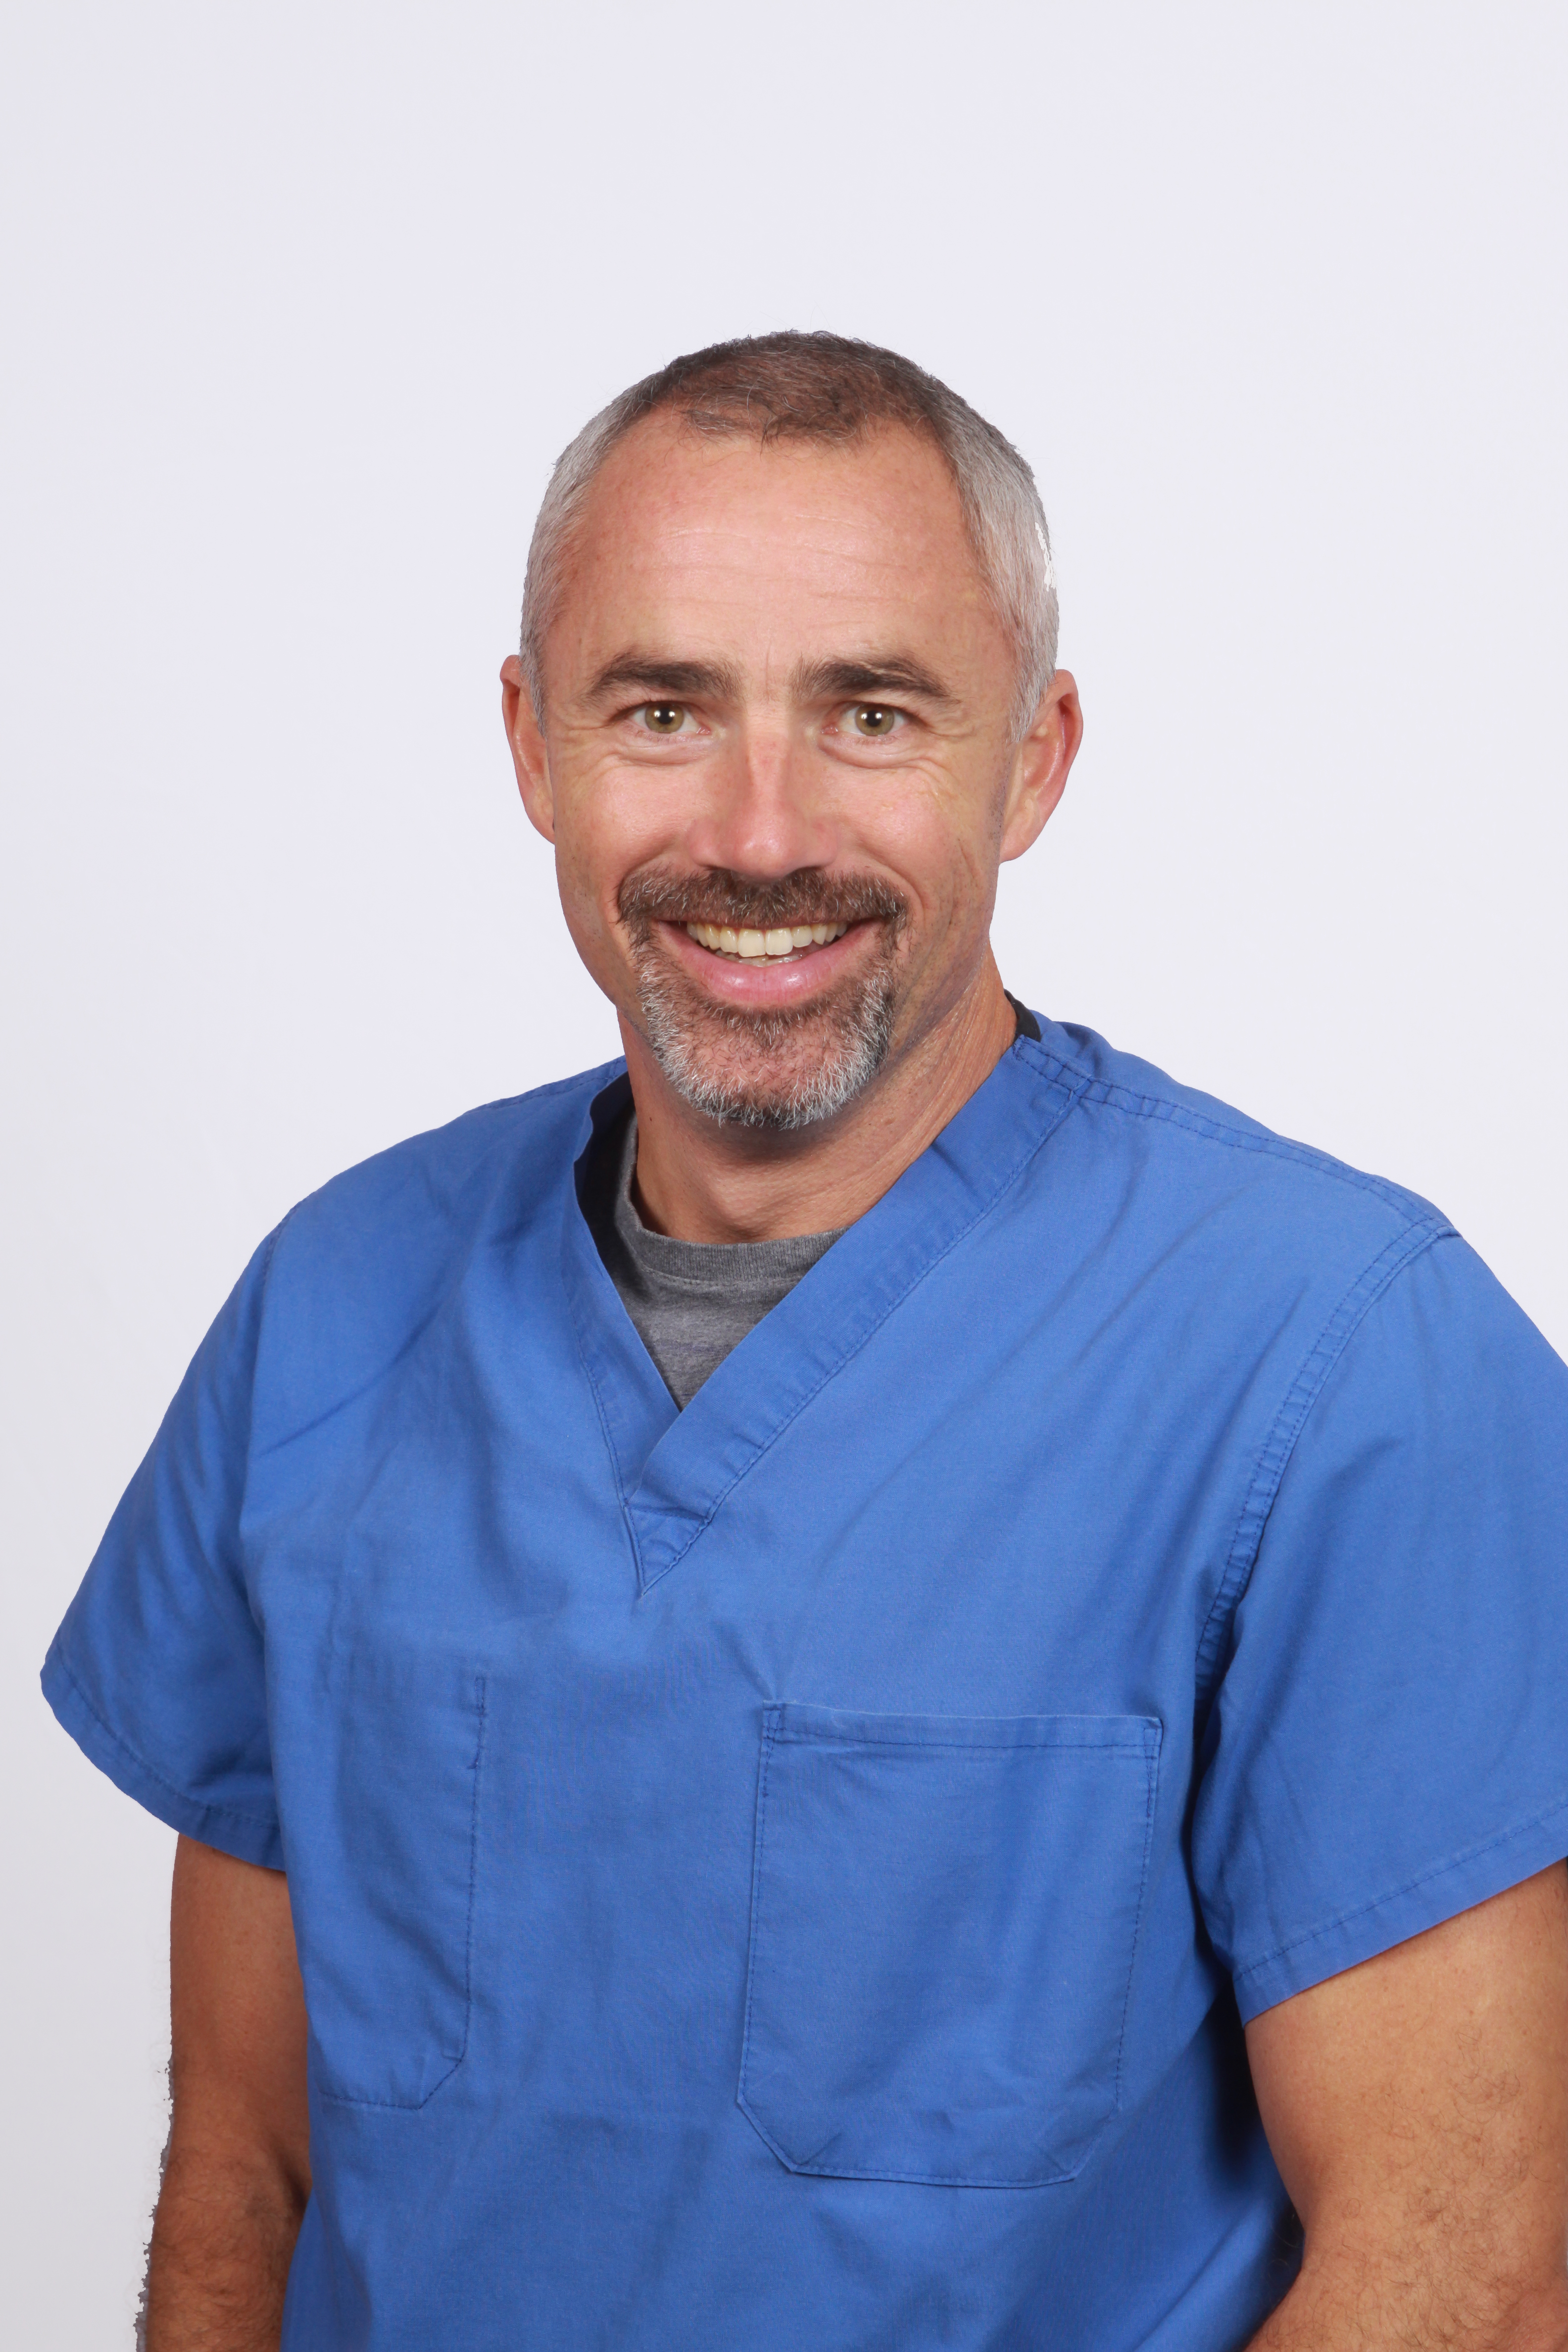 Anthony Carter, BSN, MSN, CRNA